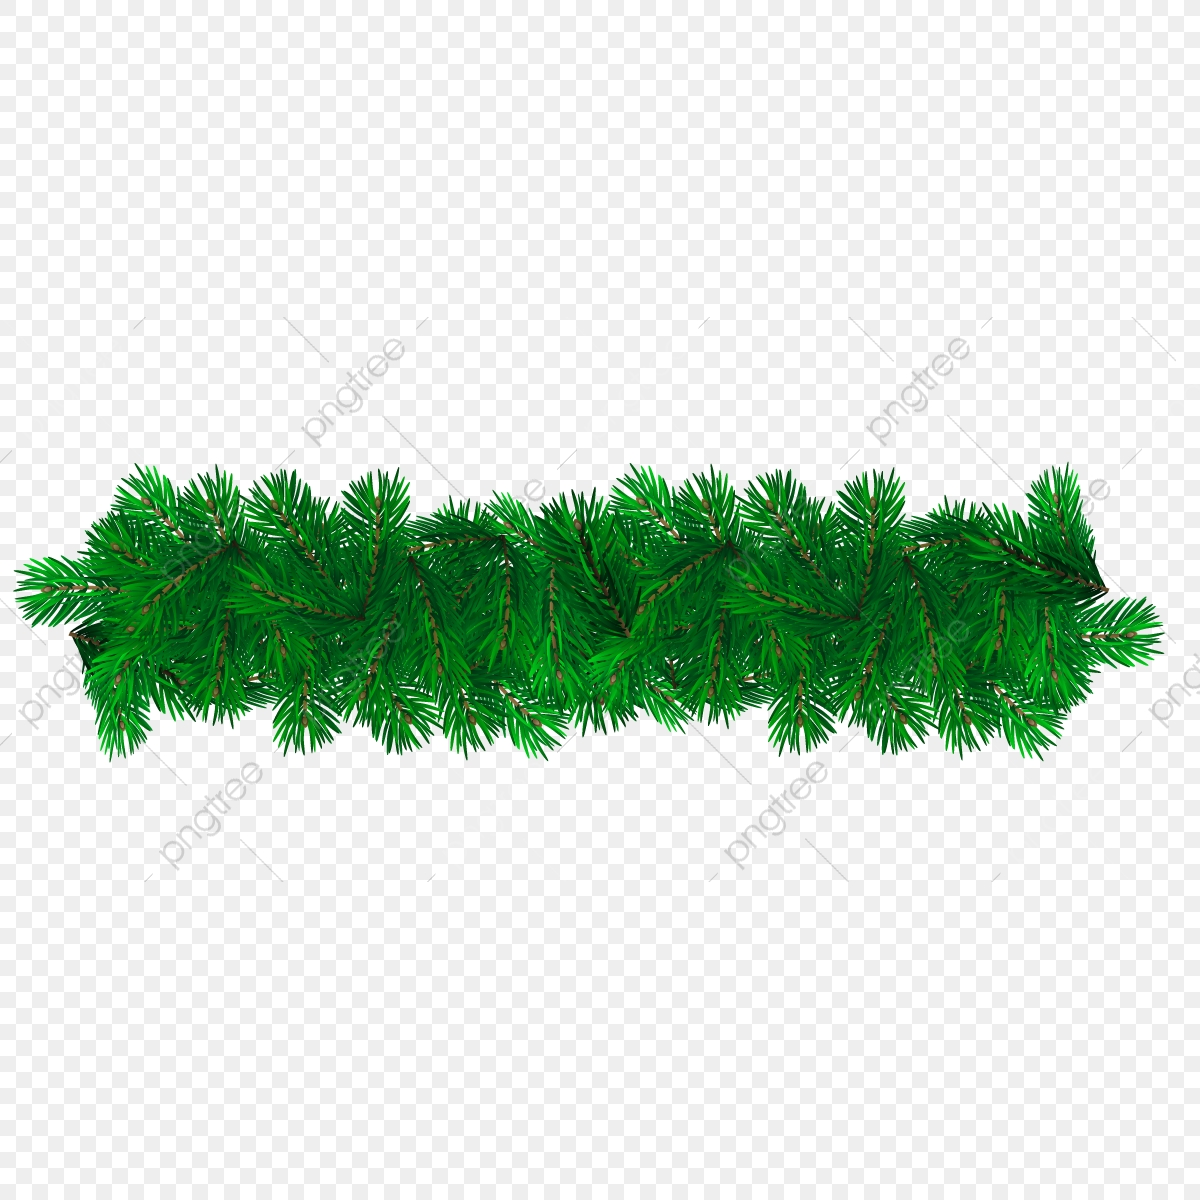 Christmas Leaf Png.Christmas Leaves Png Christmas Winter Png And Vector With